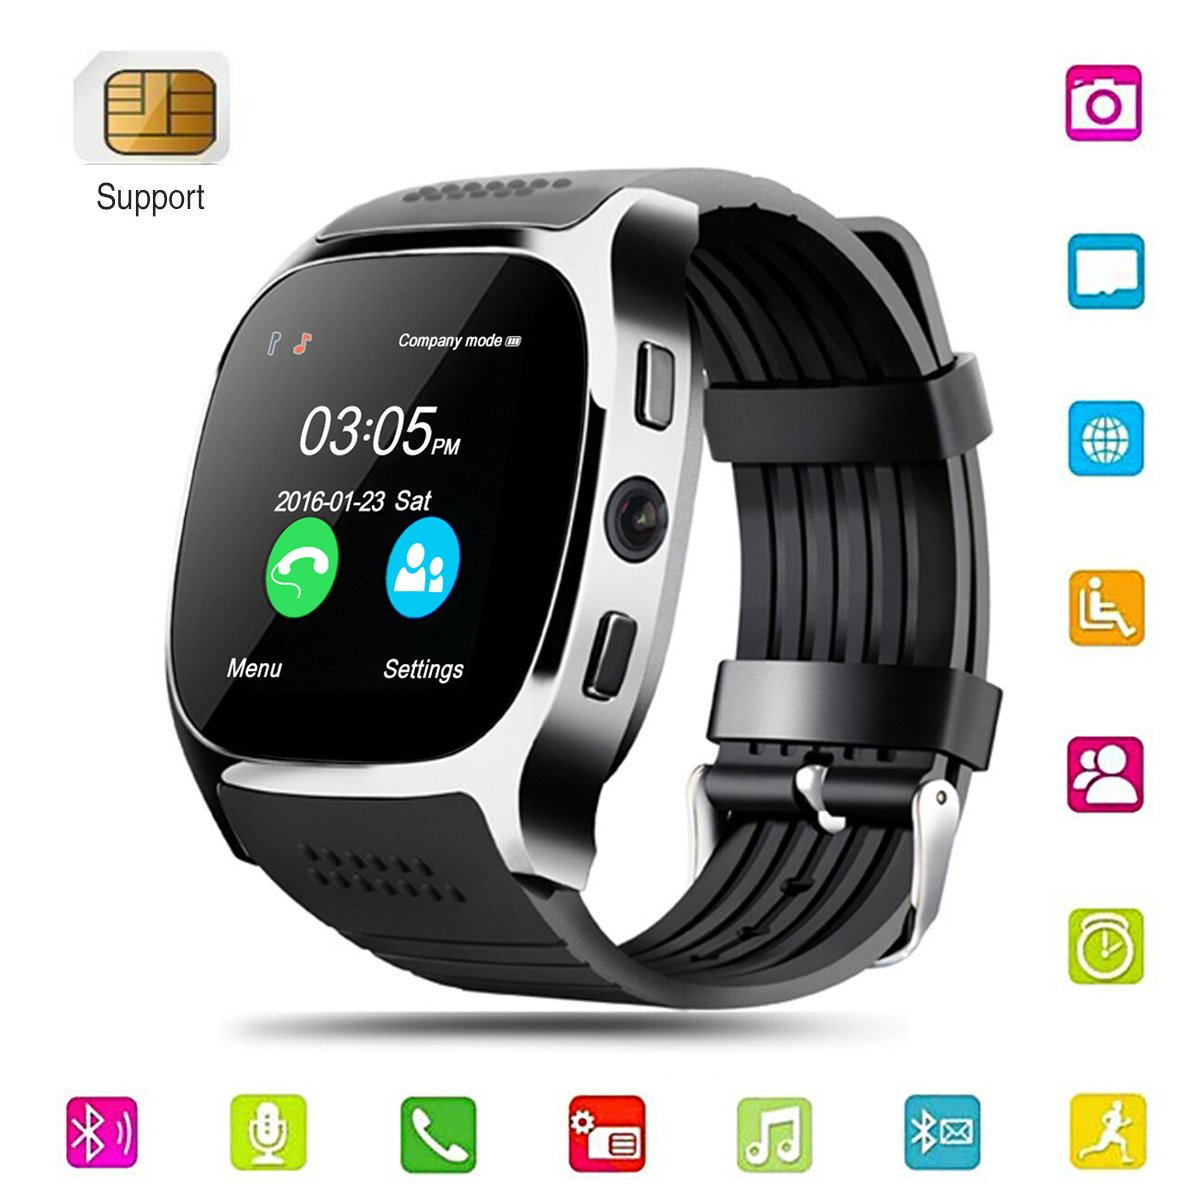 phone new free bluetooth products wifi mobile camera watches smart cell smartwatch gsm watch touch gps systerm with screen android shipping hot selling